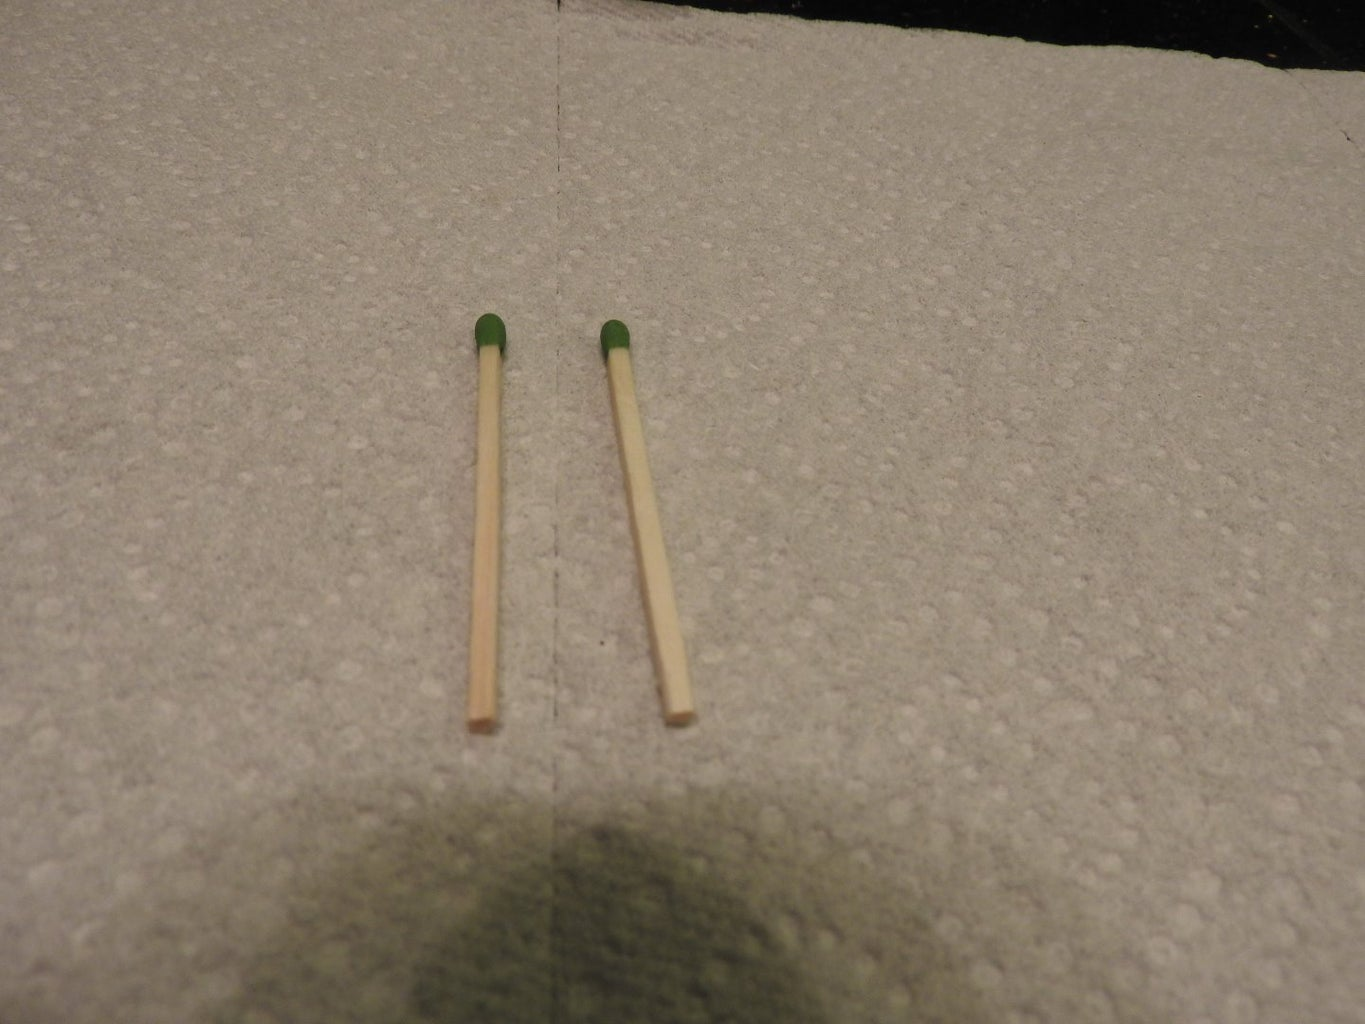 The Matches